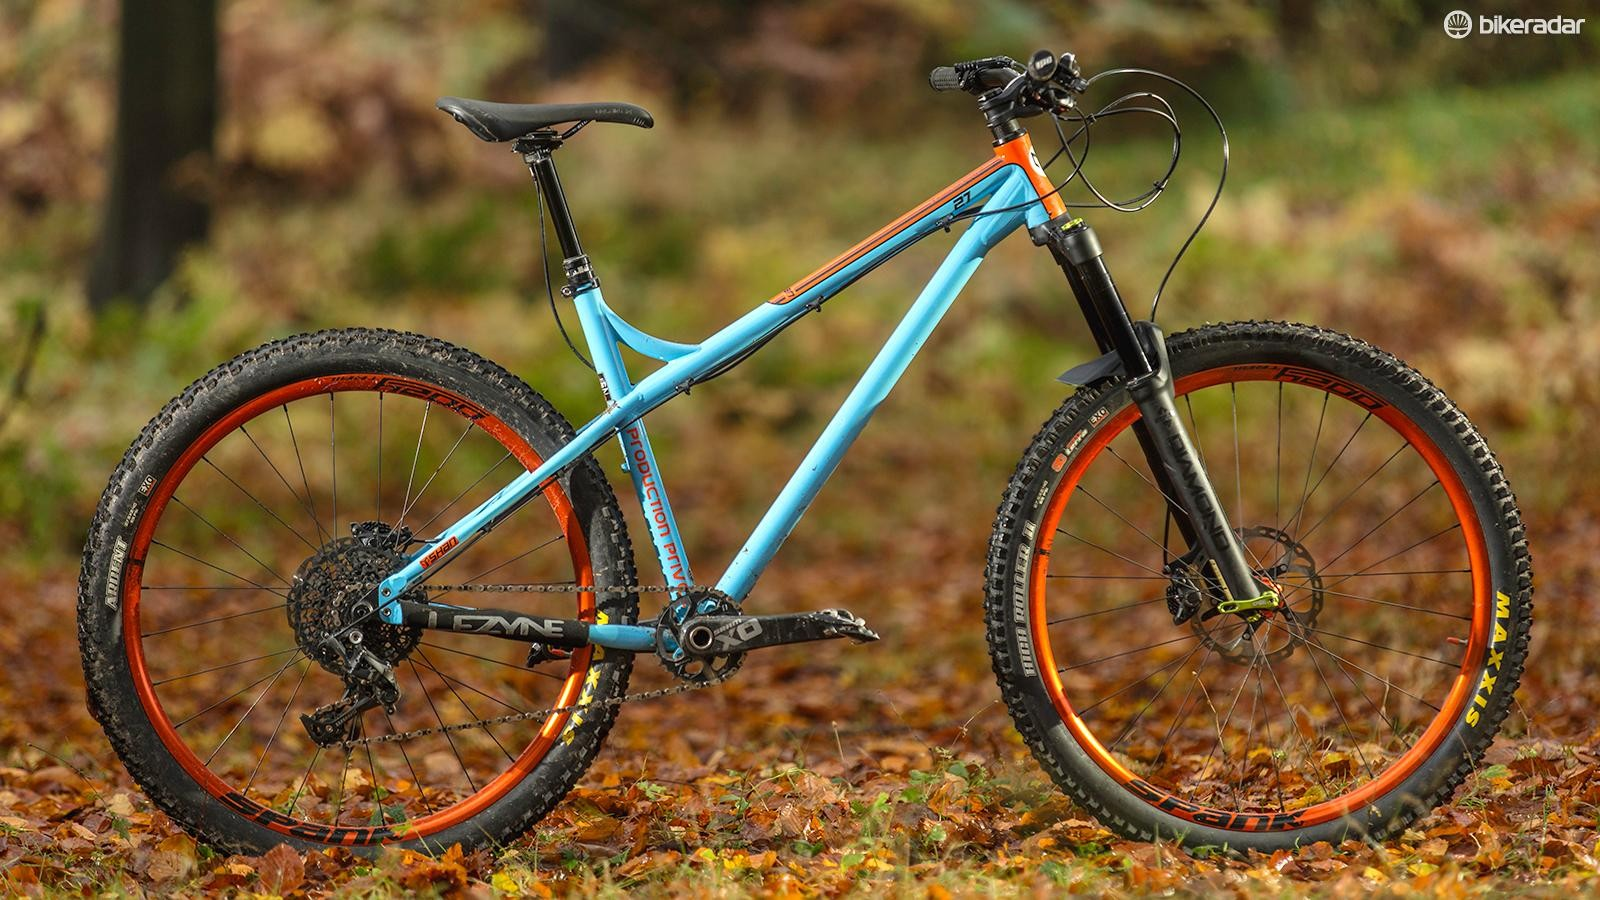 With a 160mm fork and Le Mans inspired paint job, the Production Privee Shan really stands out